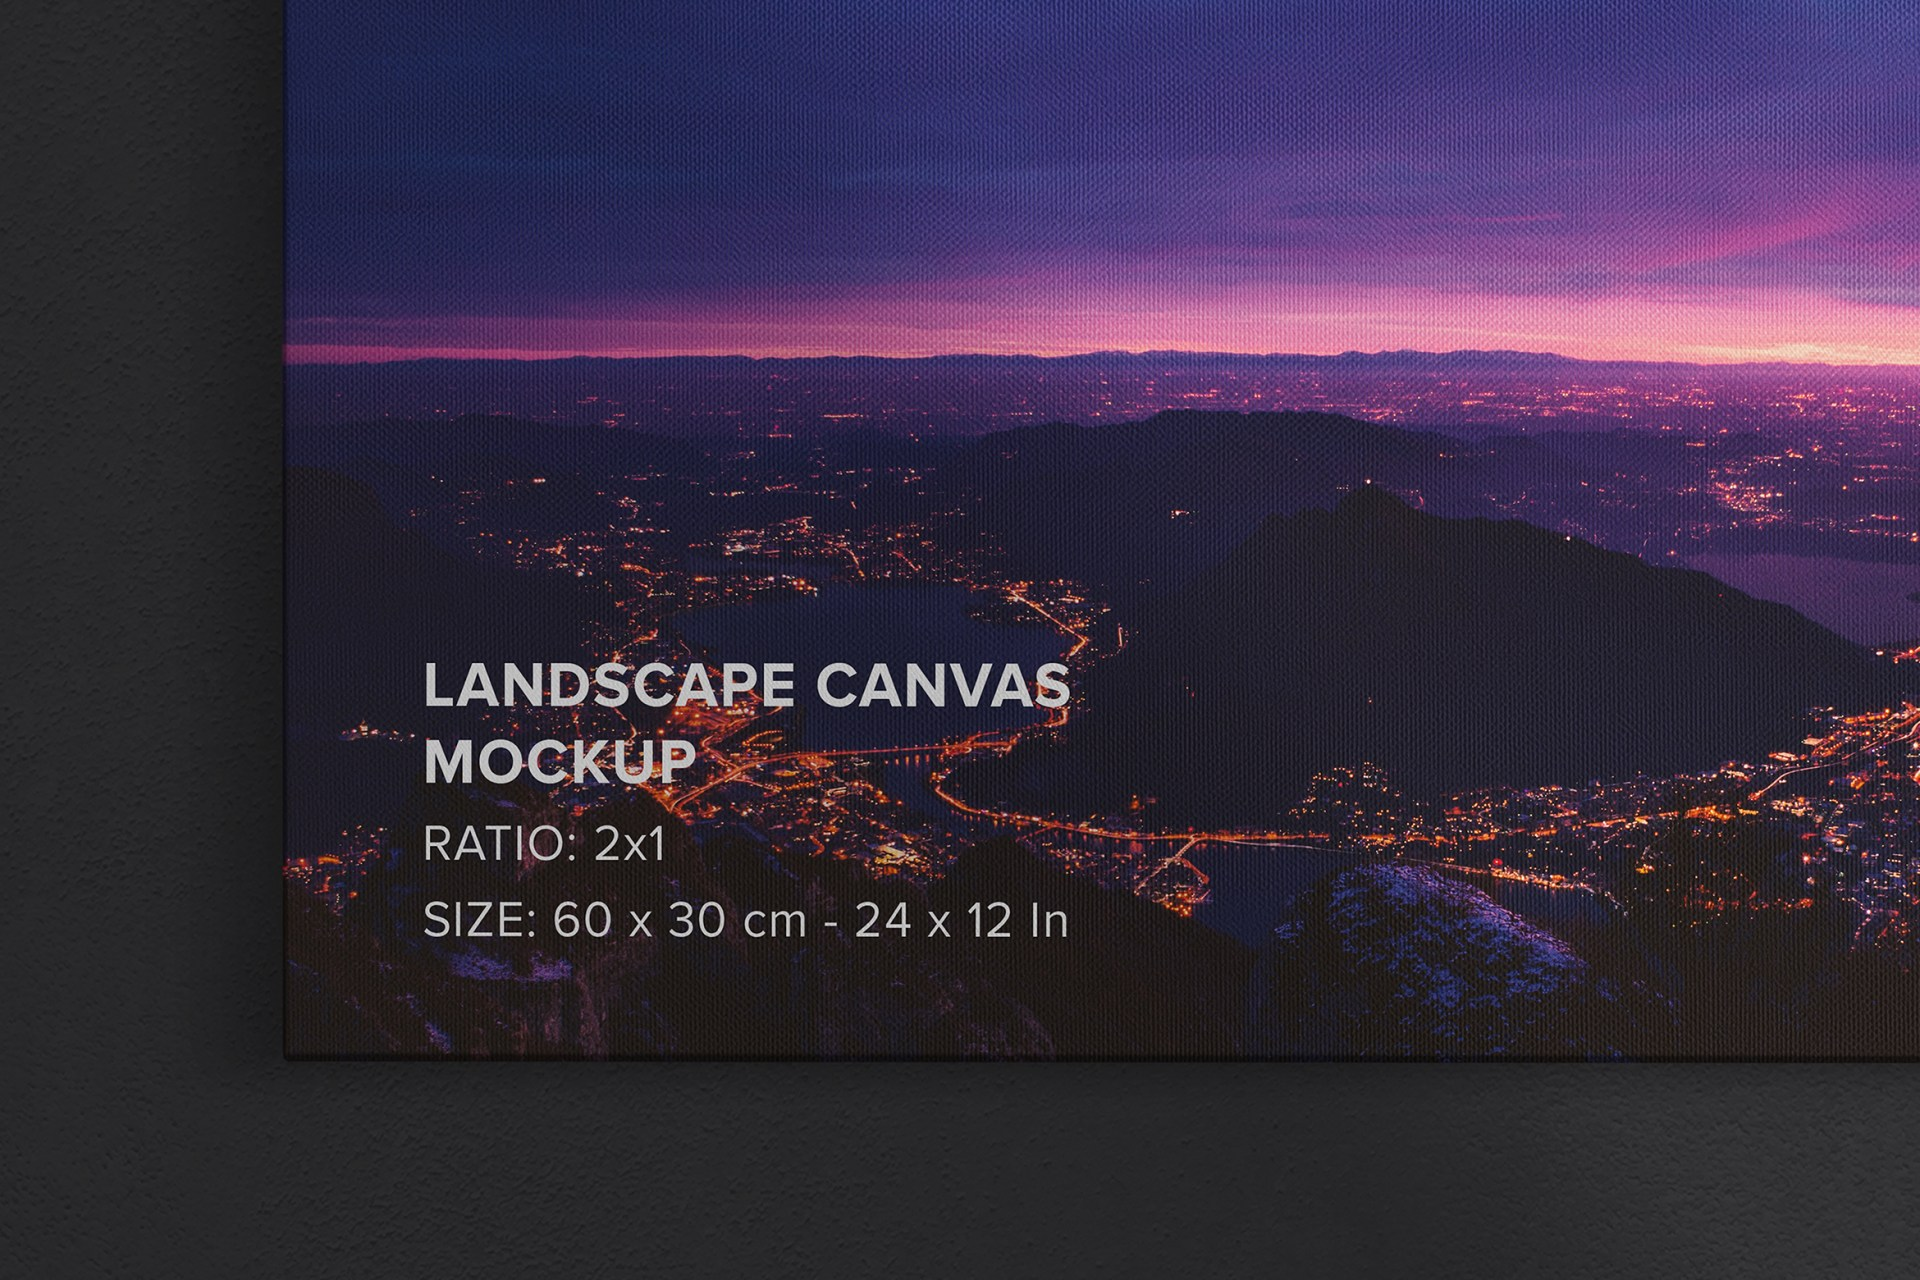 2x1 Landscape Canvas Hanging On Wall Mockup